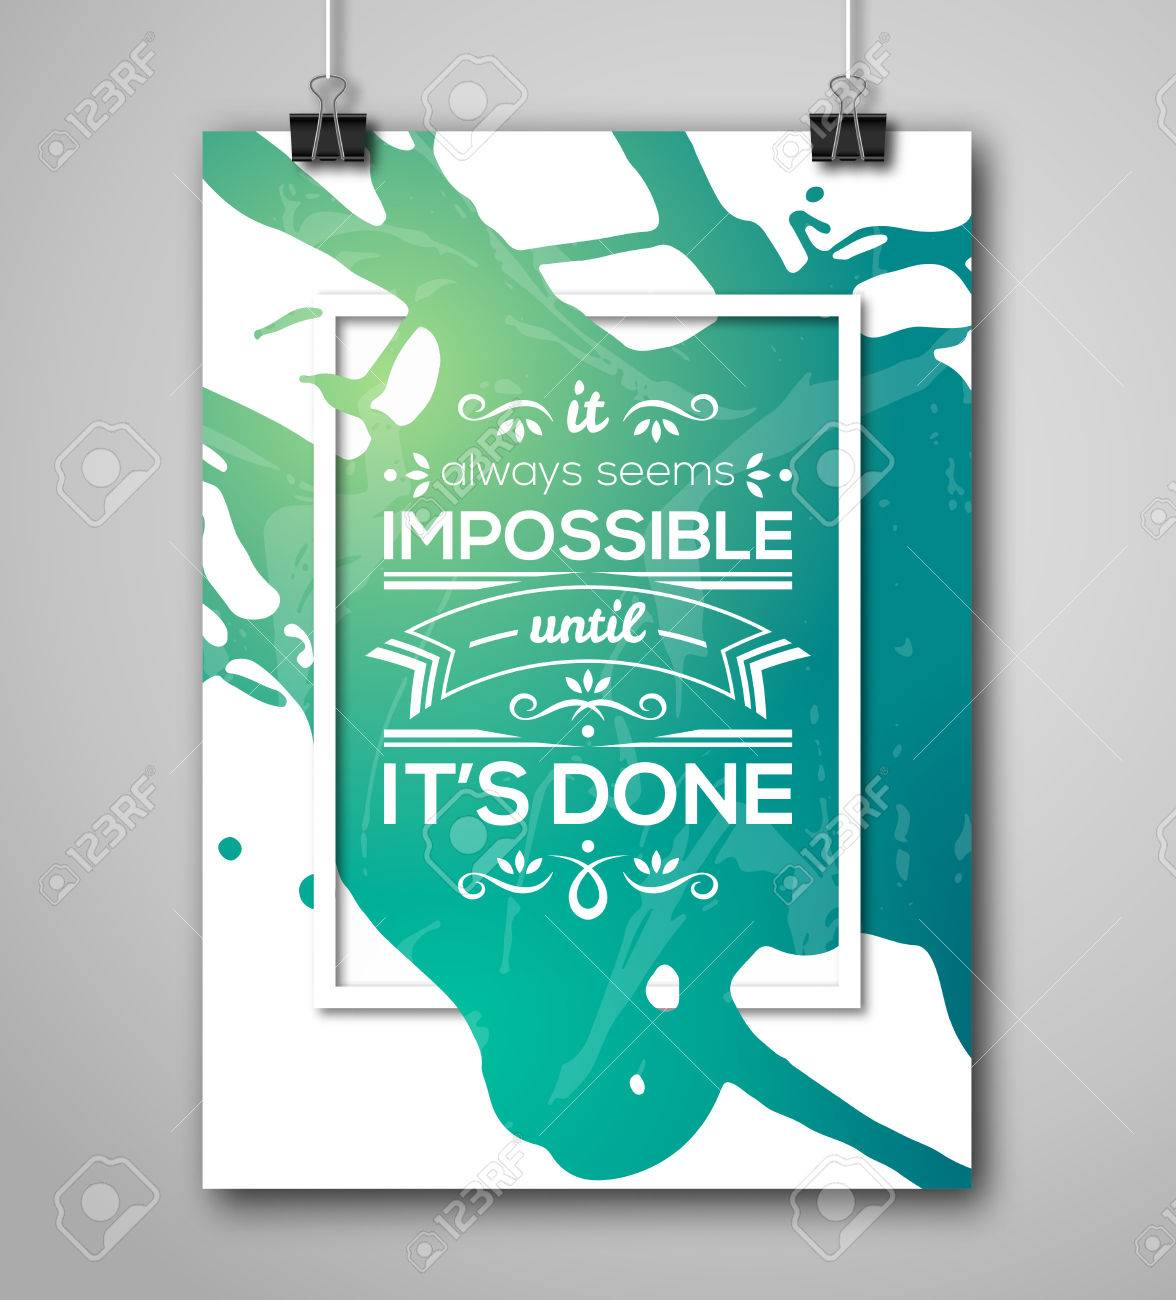 motivational poster square frame with paint splash text lettering inspirational saying about strength